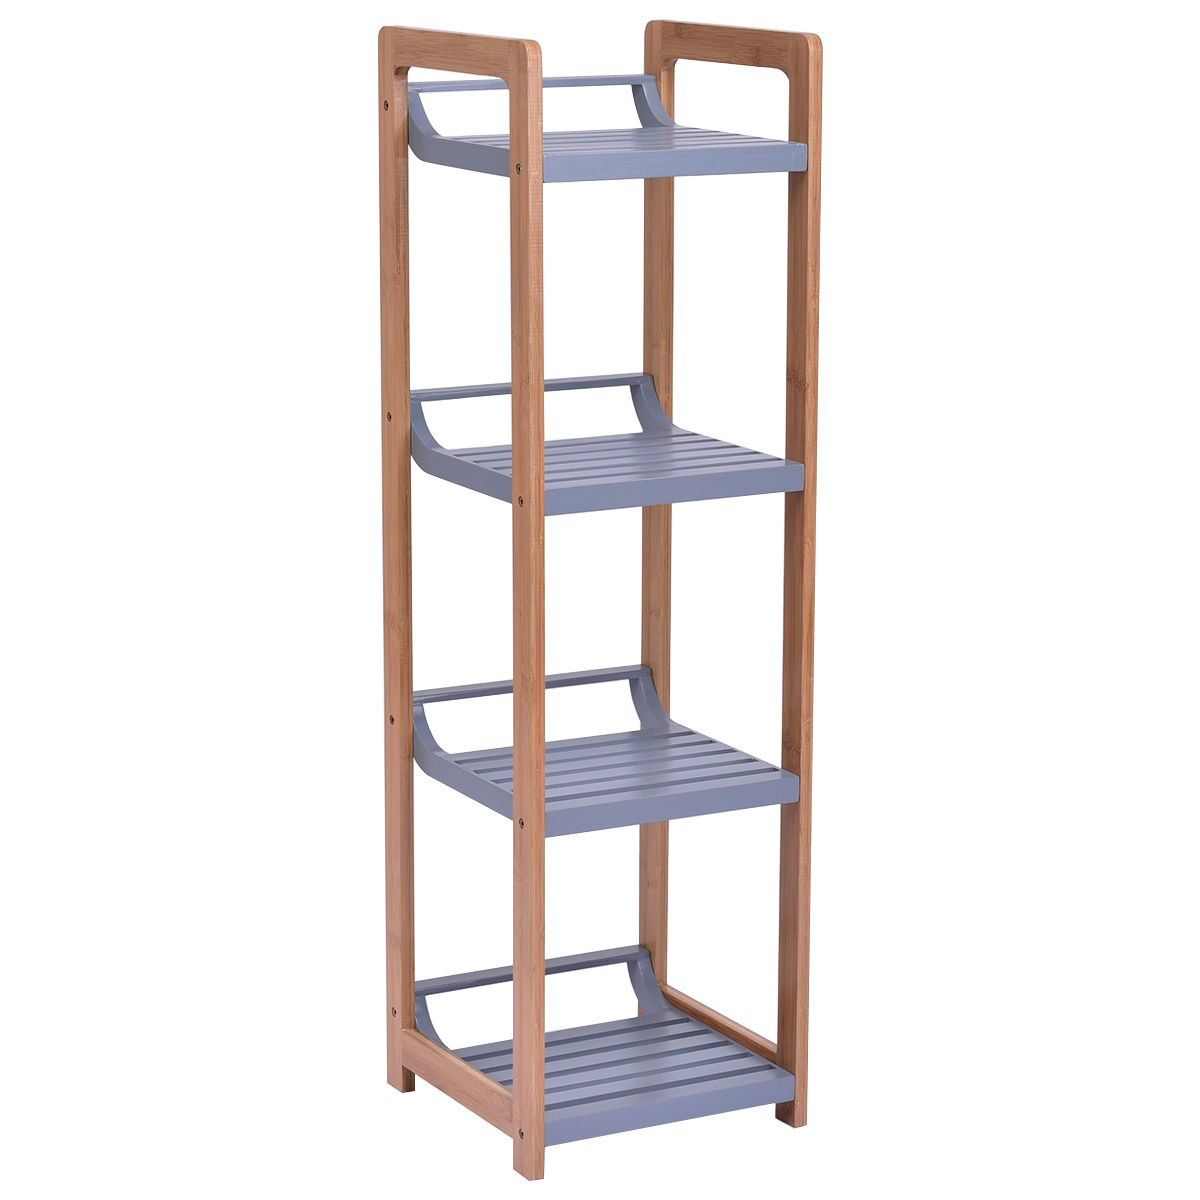 totoshop Multifunction Storage Tower Rack Shelving Shelf Units Stand Bamboo New 4 Tier by totoshop (Image #1)